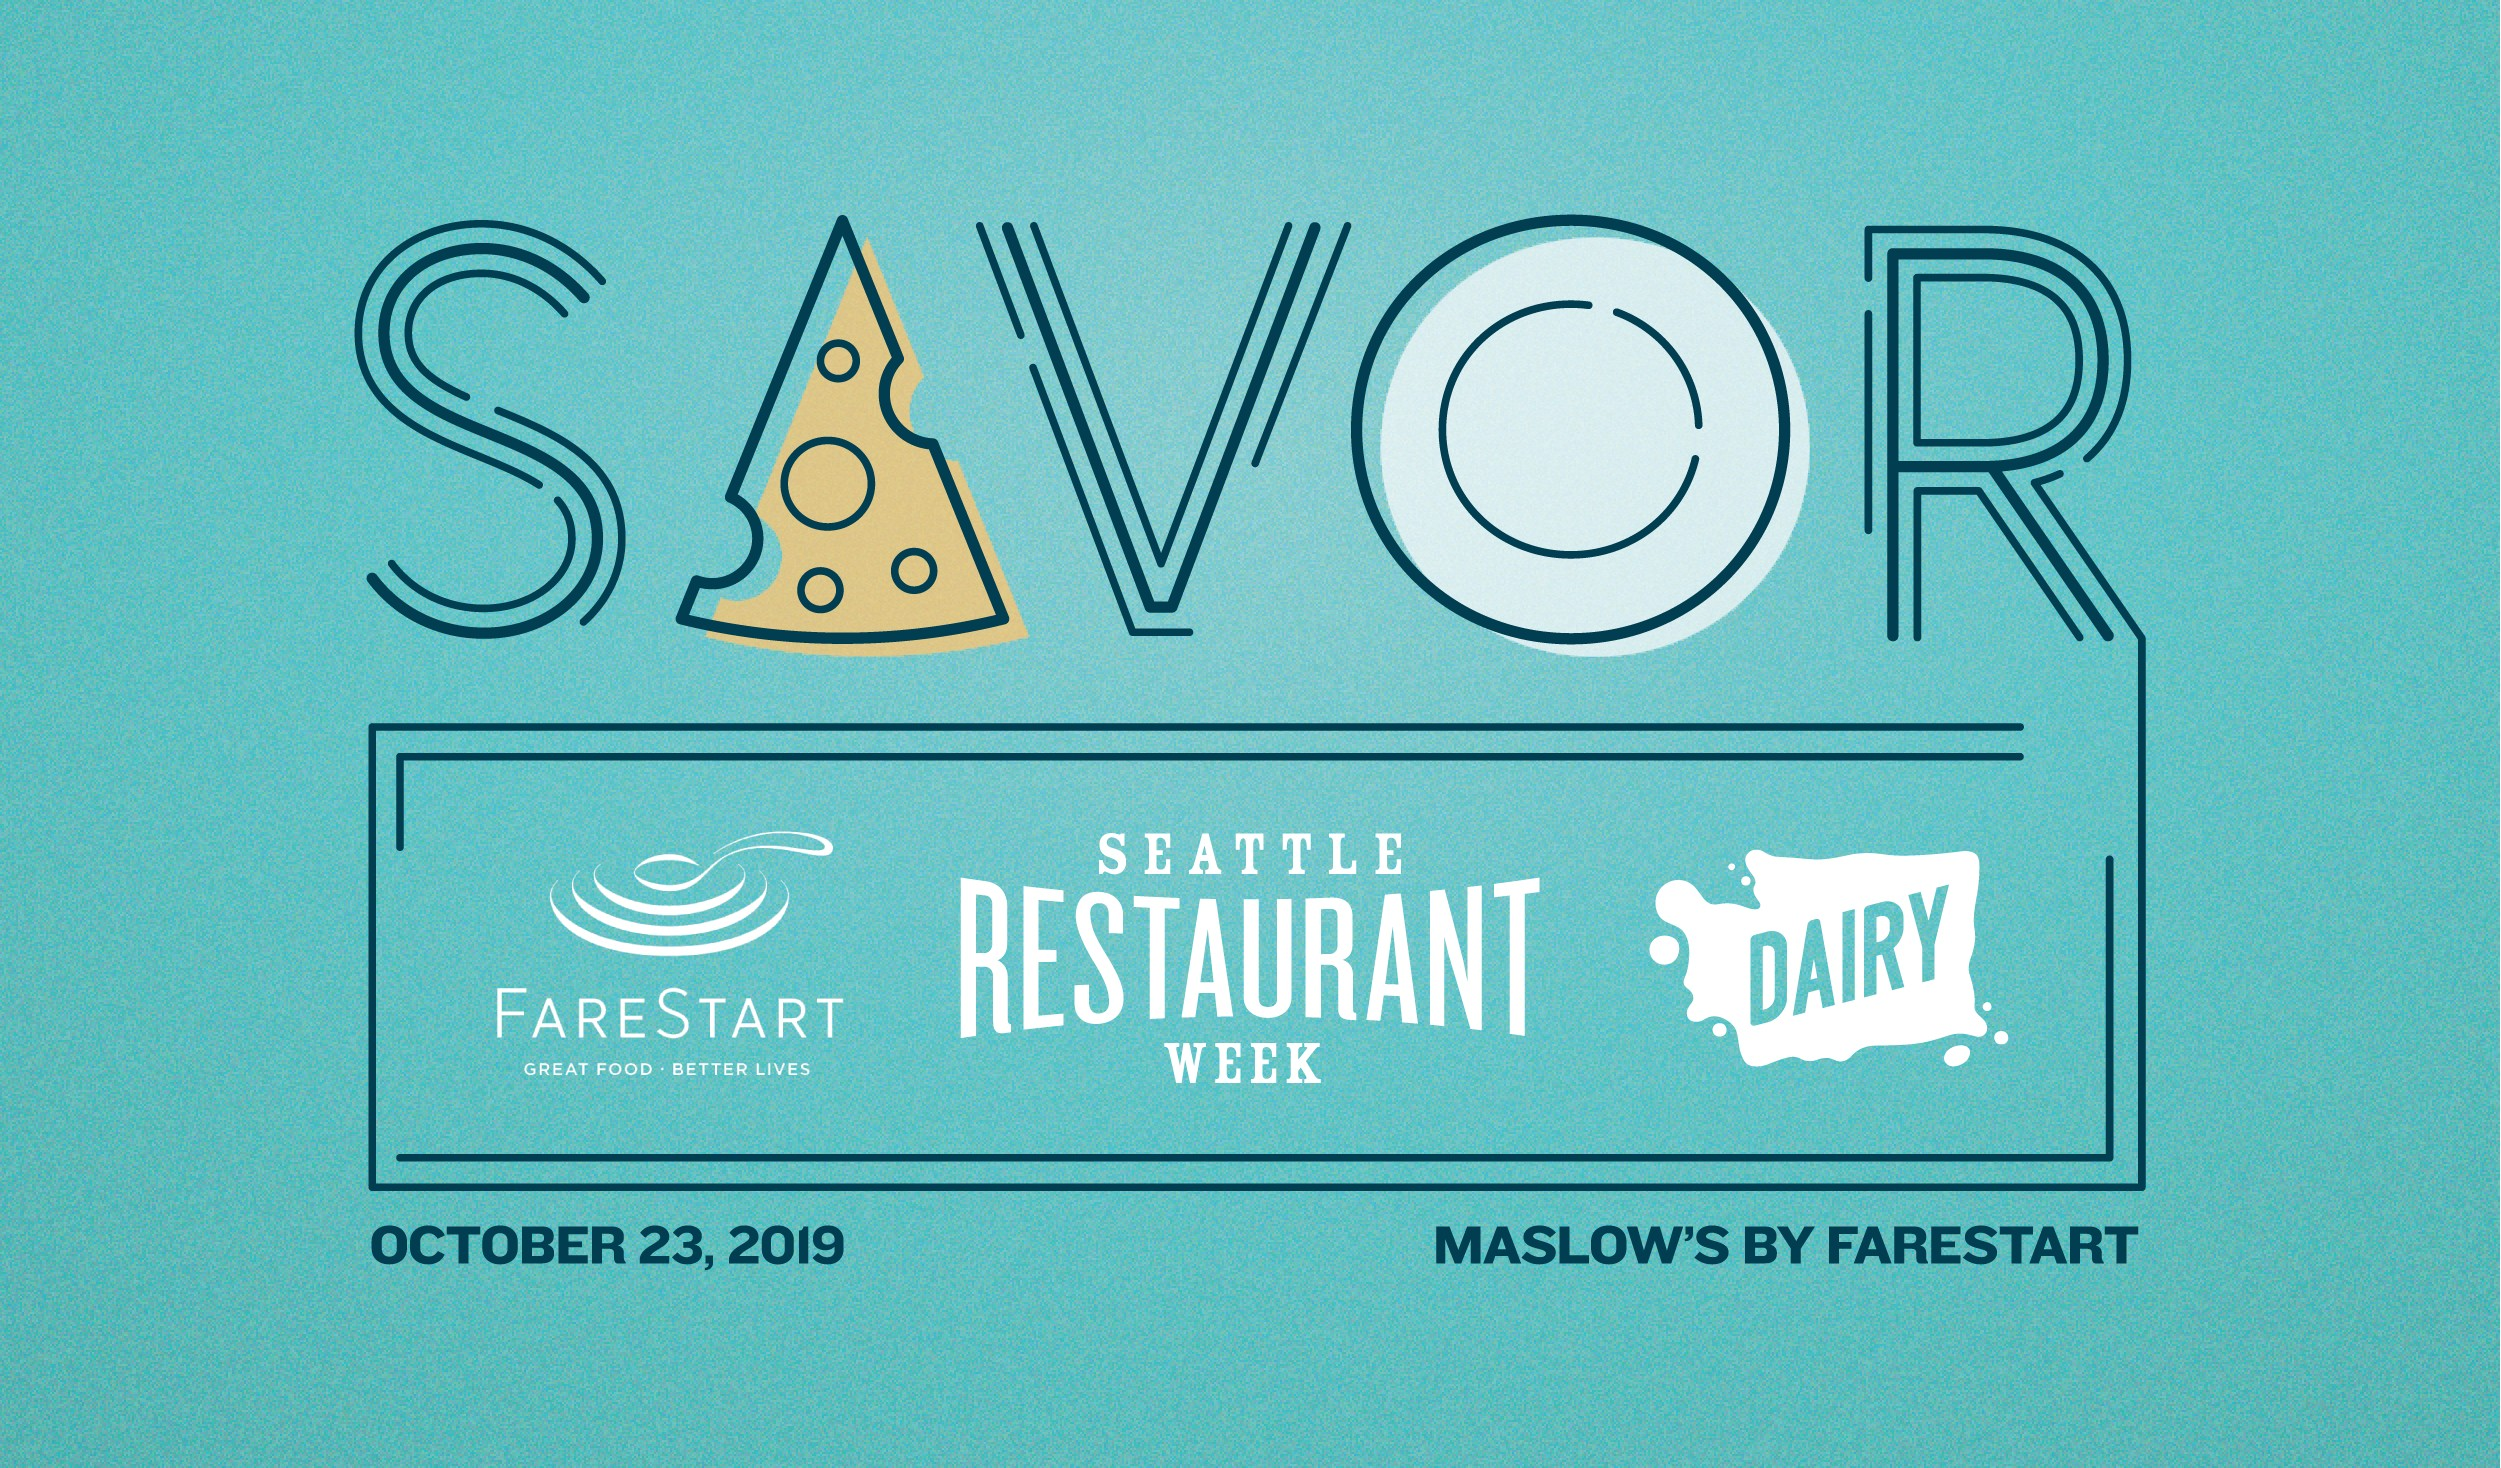 Savor Seattle Restaurant Week Tickets | Maslow's By Farestart | Seattle, WA | Early Access: 4:45 - 7:30 pm General Access: 5:30 - 7:30 pm | Stranger Tickets